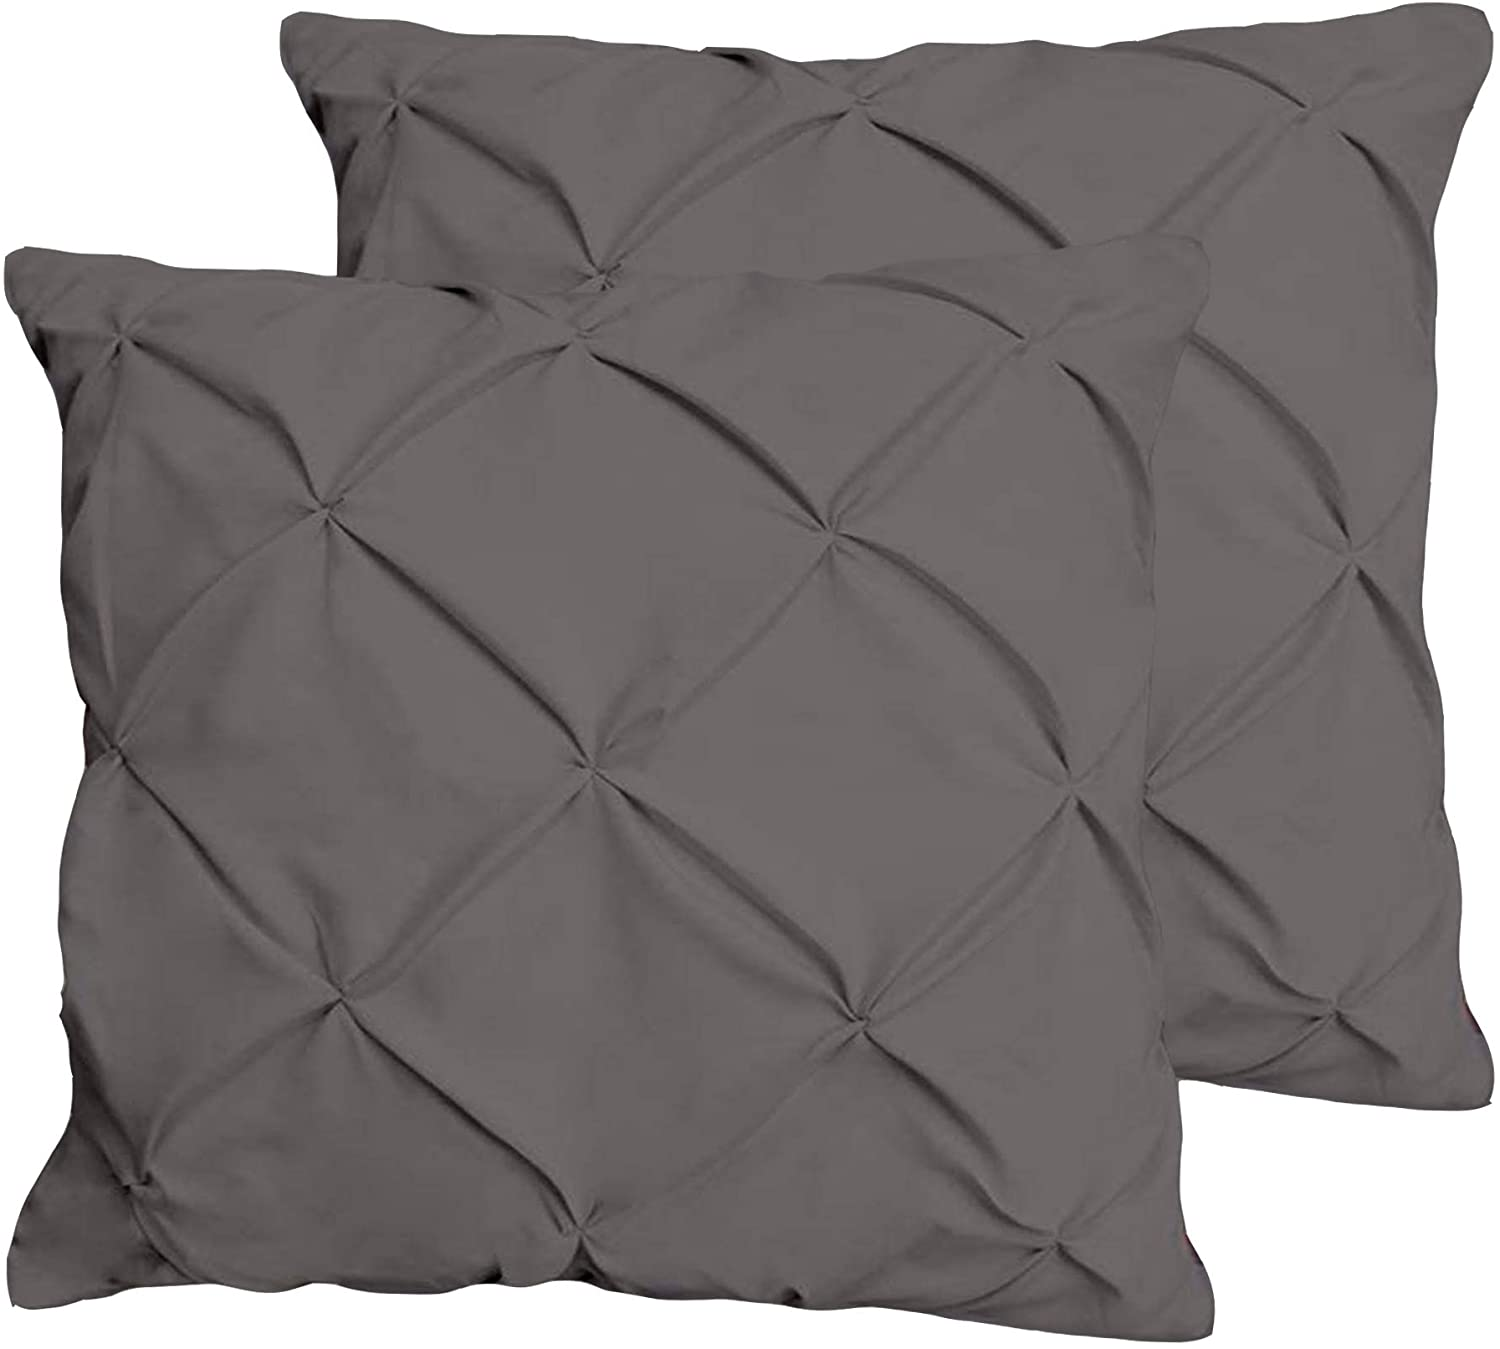 JBD LINEN Pinch Pleated Pintuck Design Throw Pillow Sized 14 x 14 inch Cushion Cover Set of 2 Piece, 800 Thread Count 100% Egyptian Cotton Dark Grey Solid